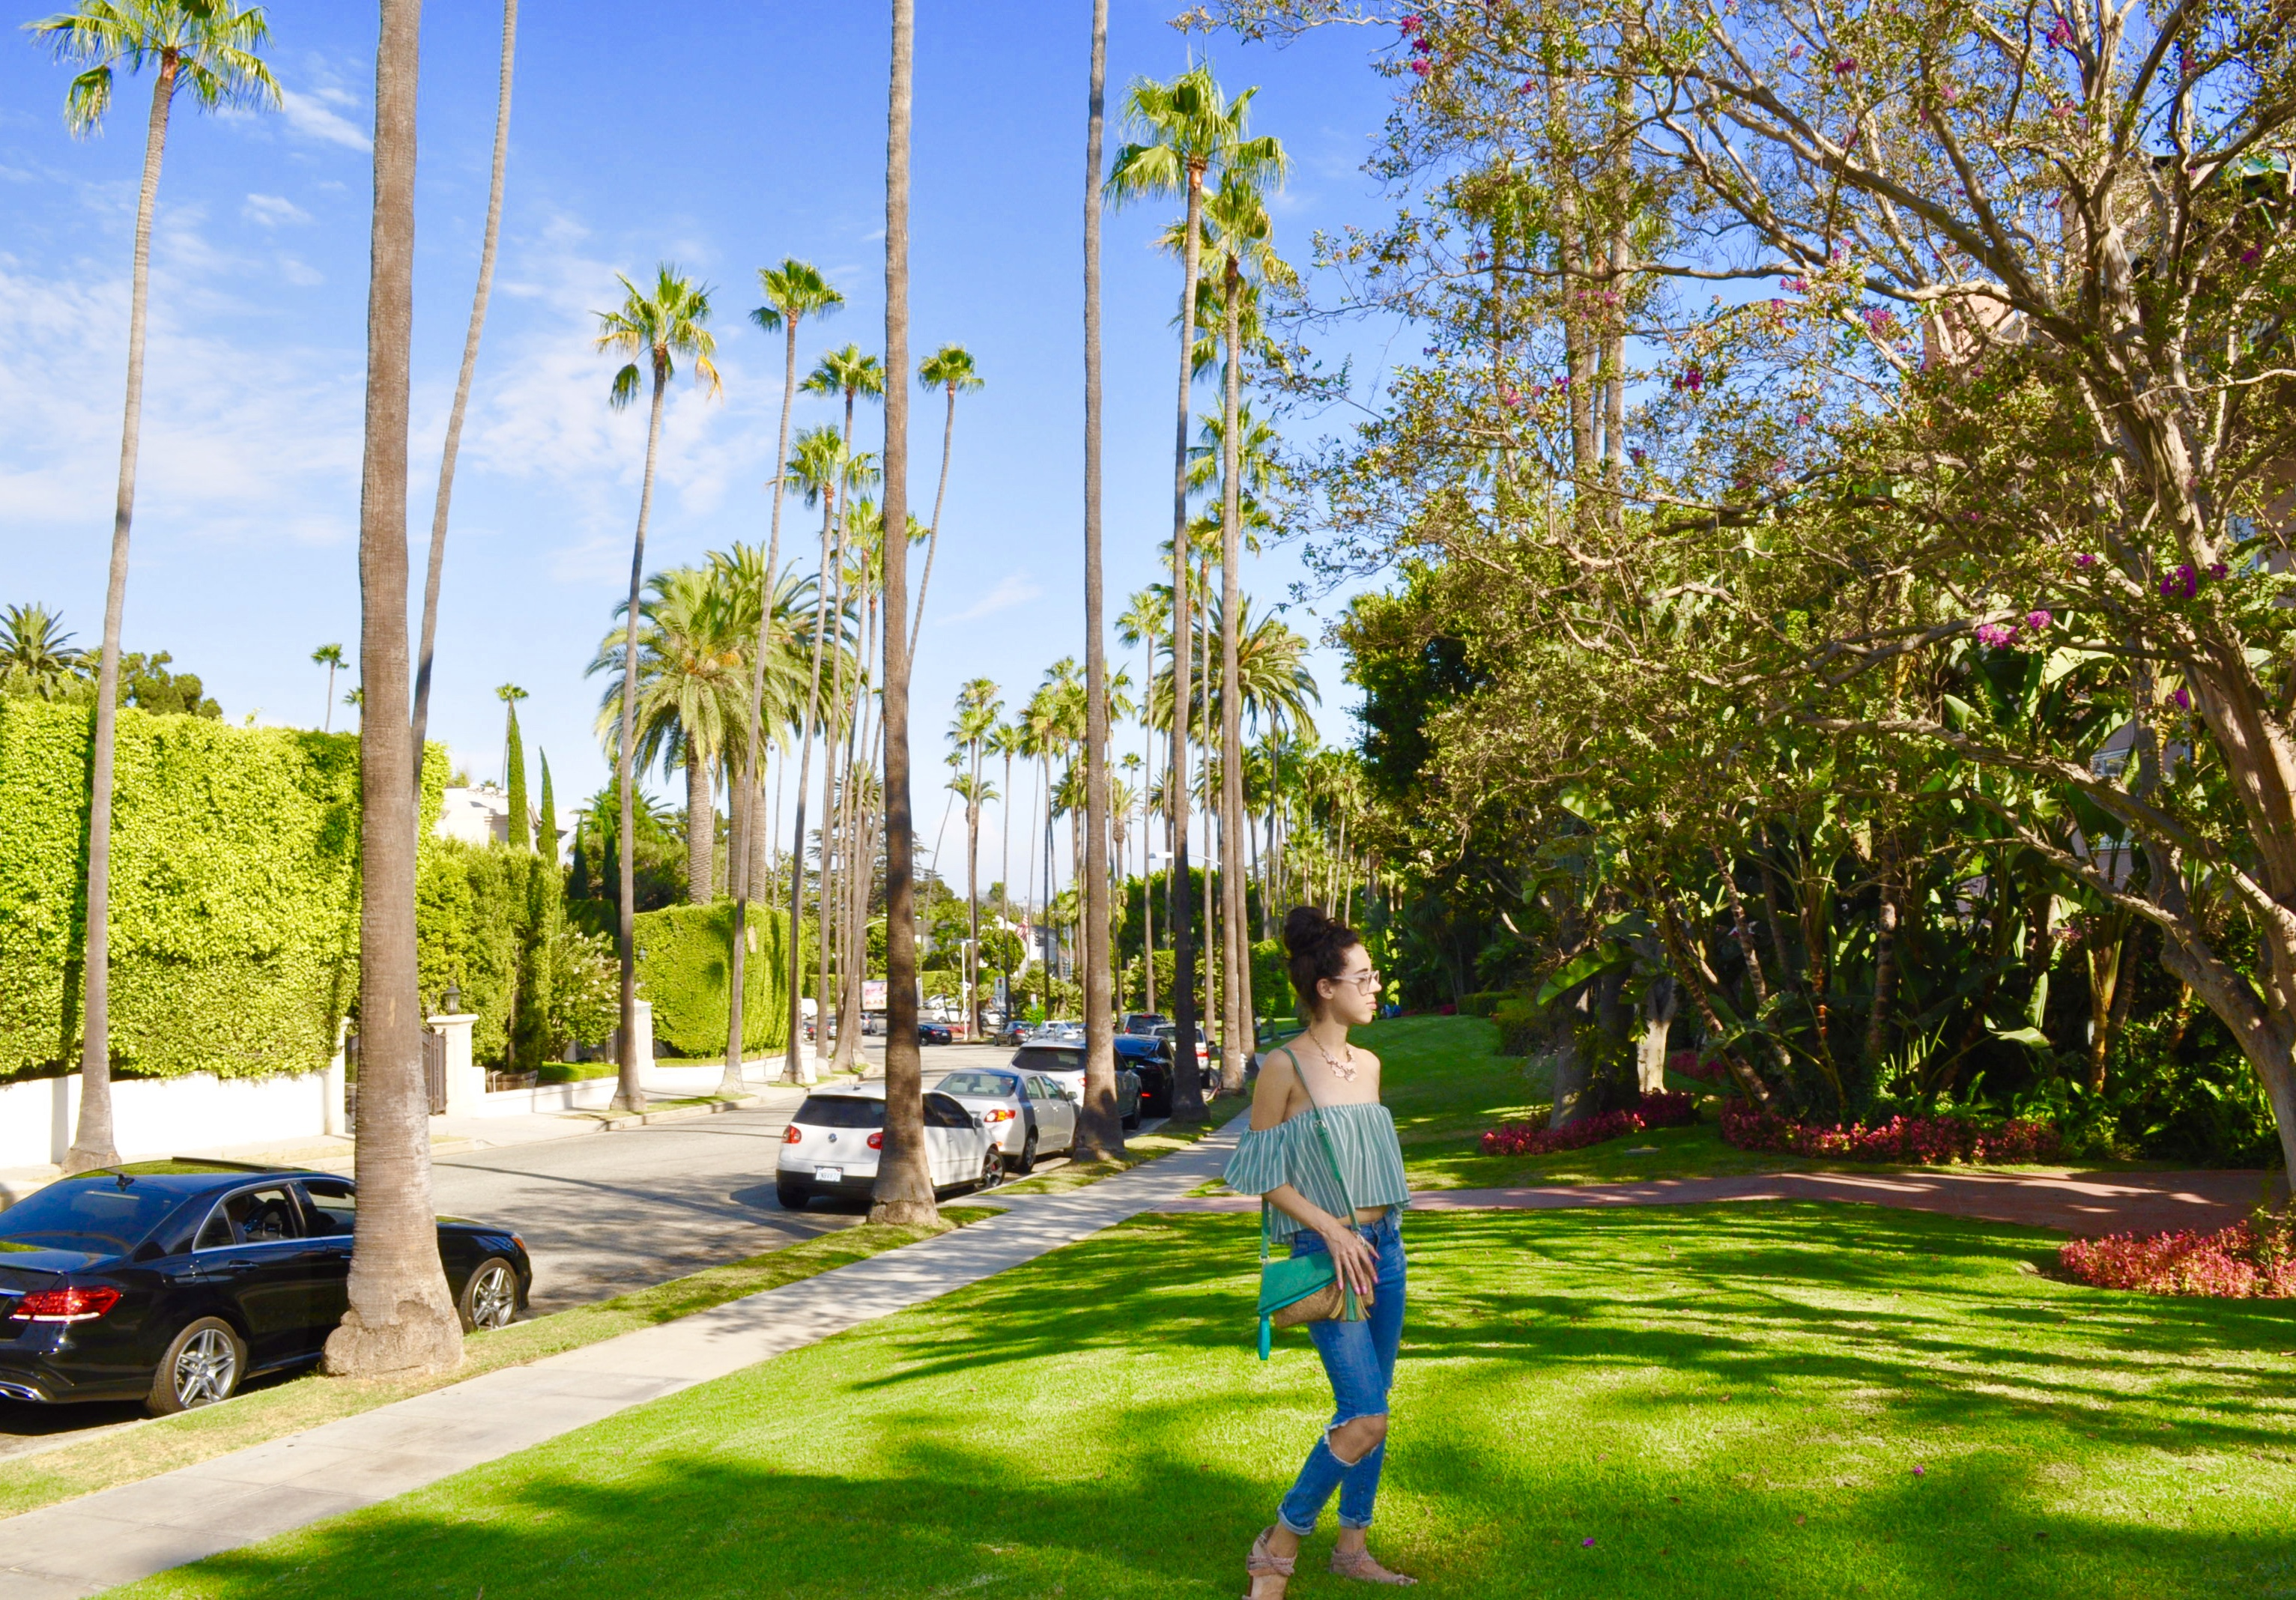 The Other Week I Went To Relax For Day At Beverly Hills Hotel Commonly Referred As Pink Palace With A Of My Blogger Friends